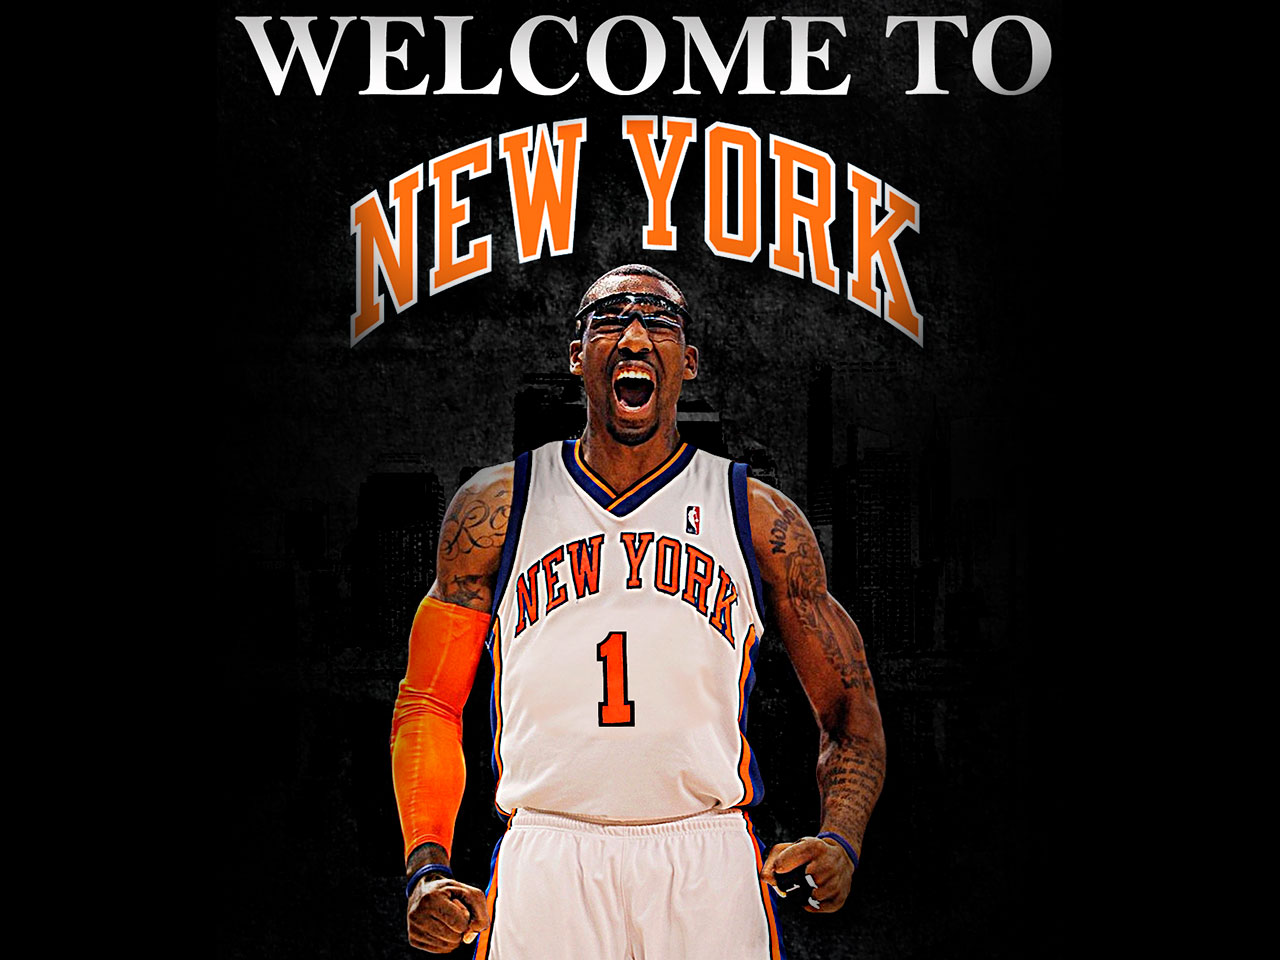 ... in new york KNICKS jersey and note welcome to new york wallpaper